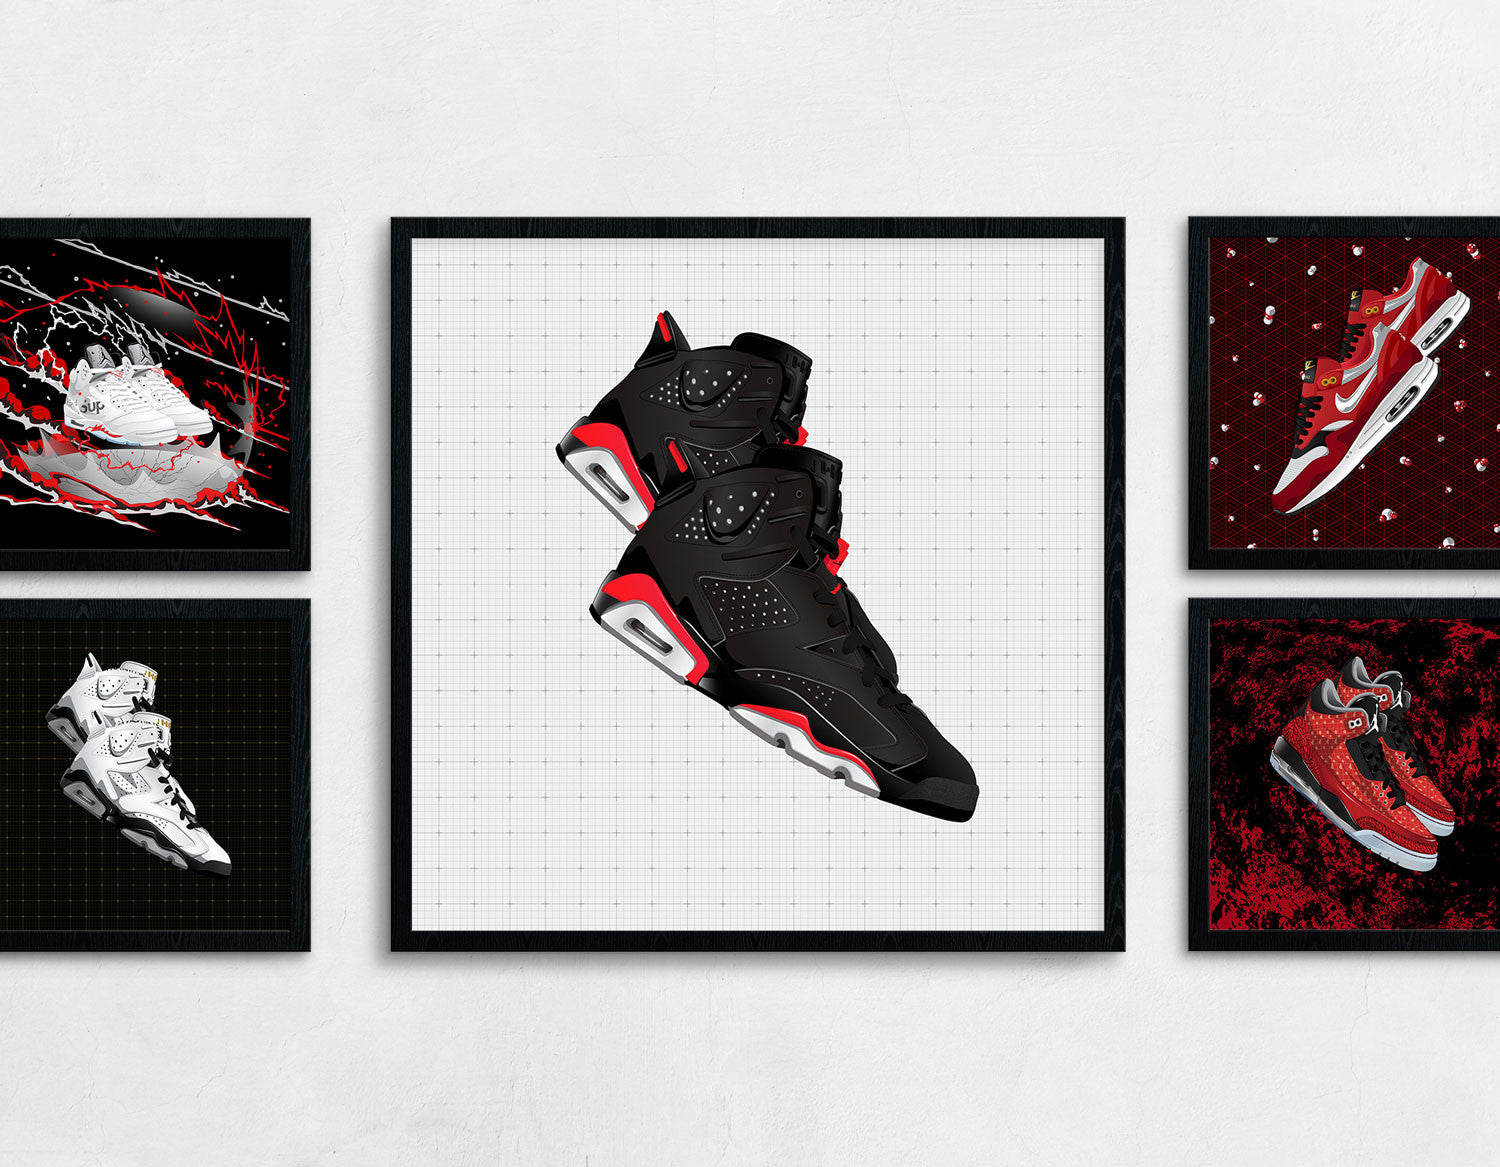 Framed Contemporary Sneaker Art of the Air Jordan 6 Bred